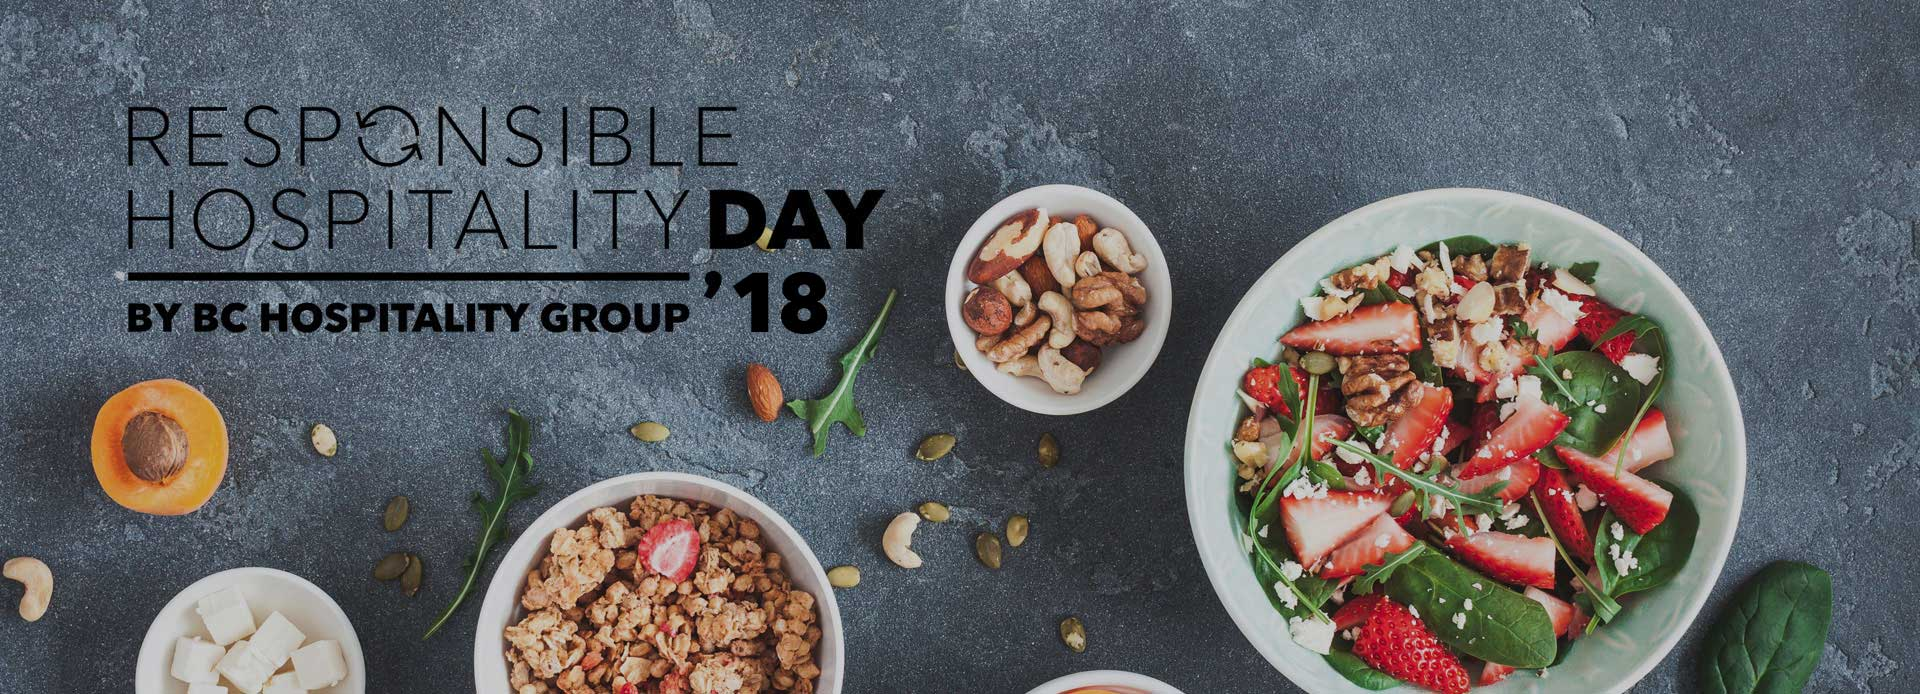 Responsible Hospitality Day 2018